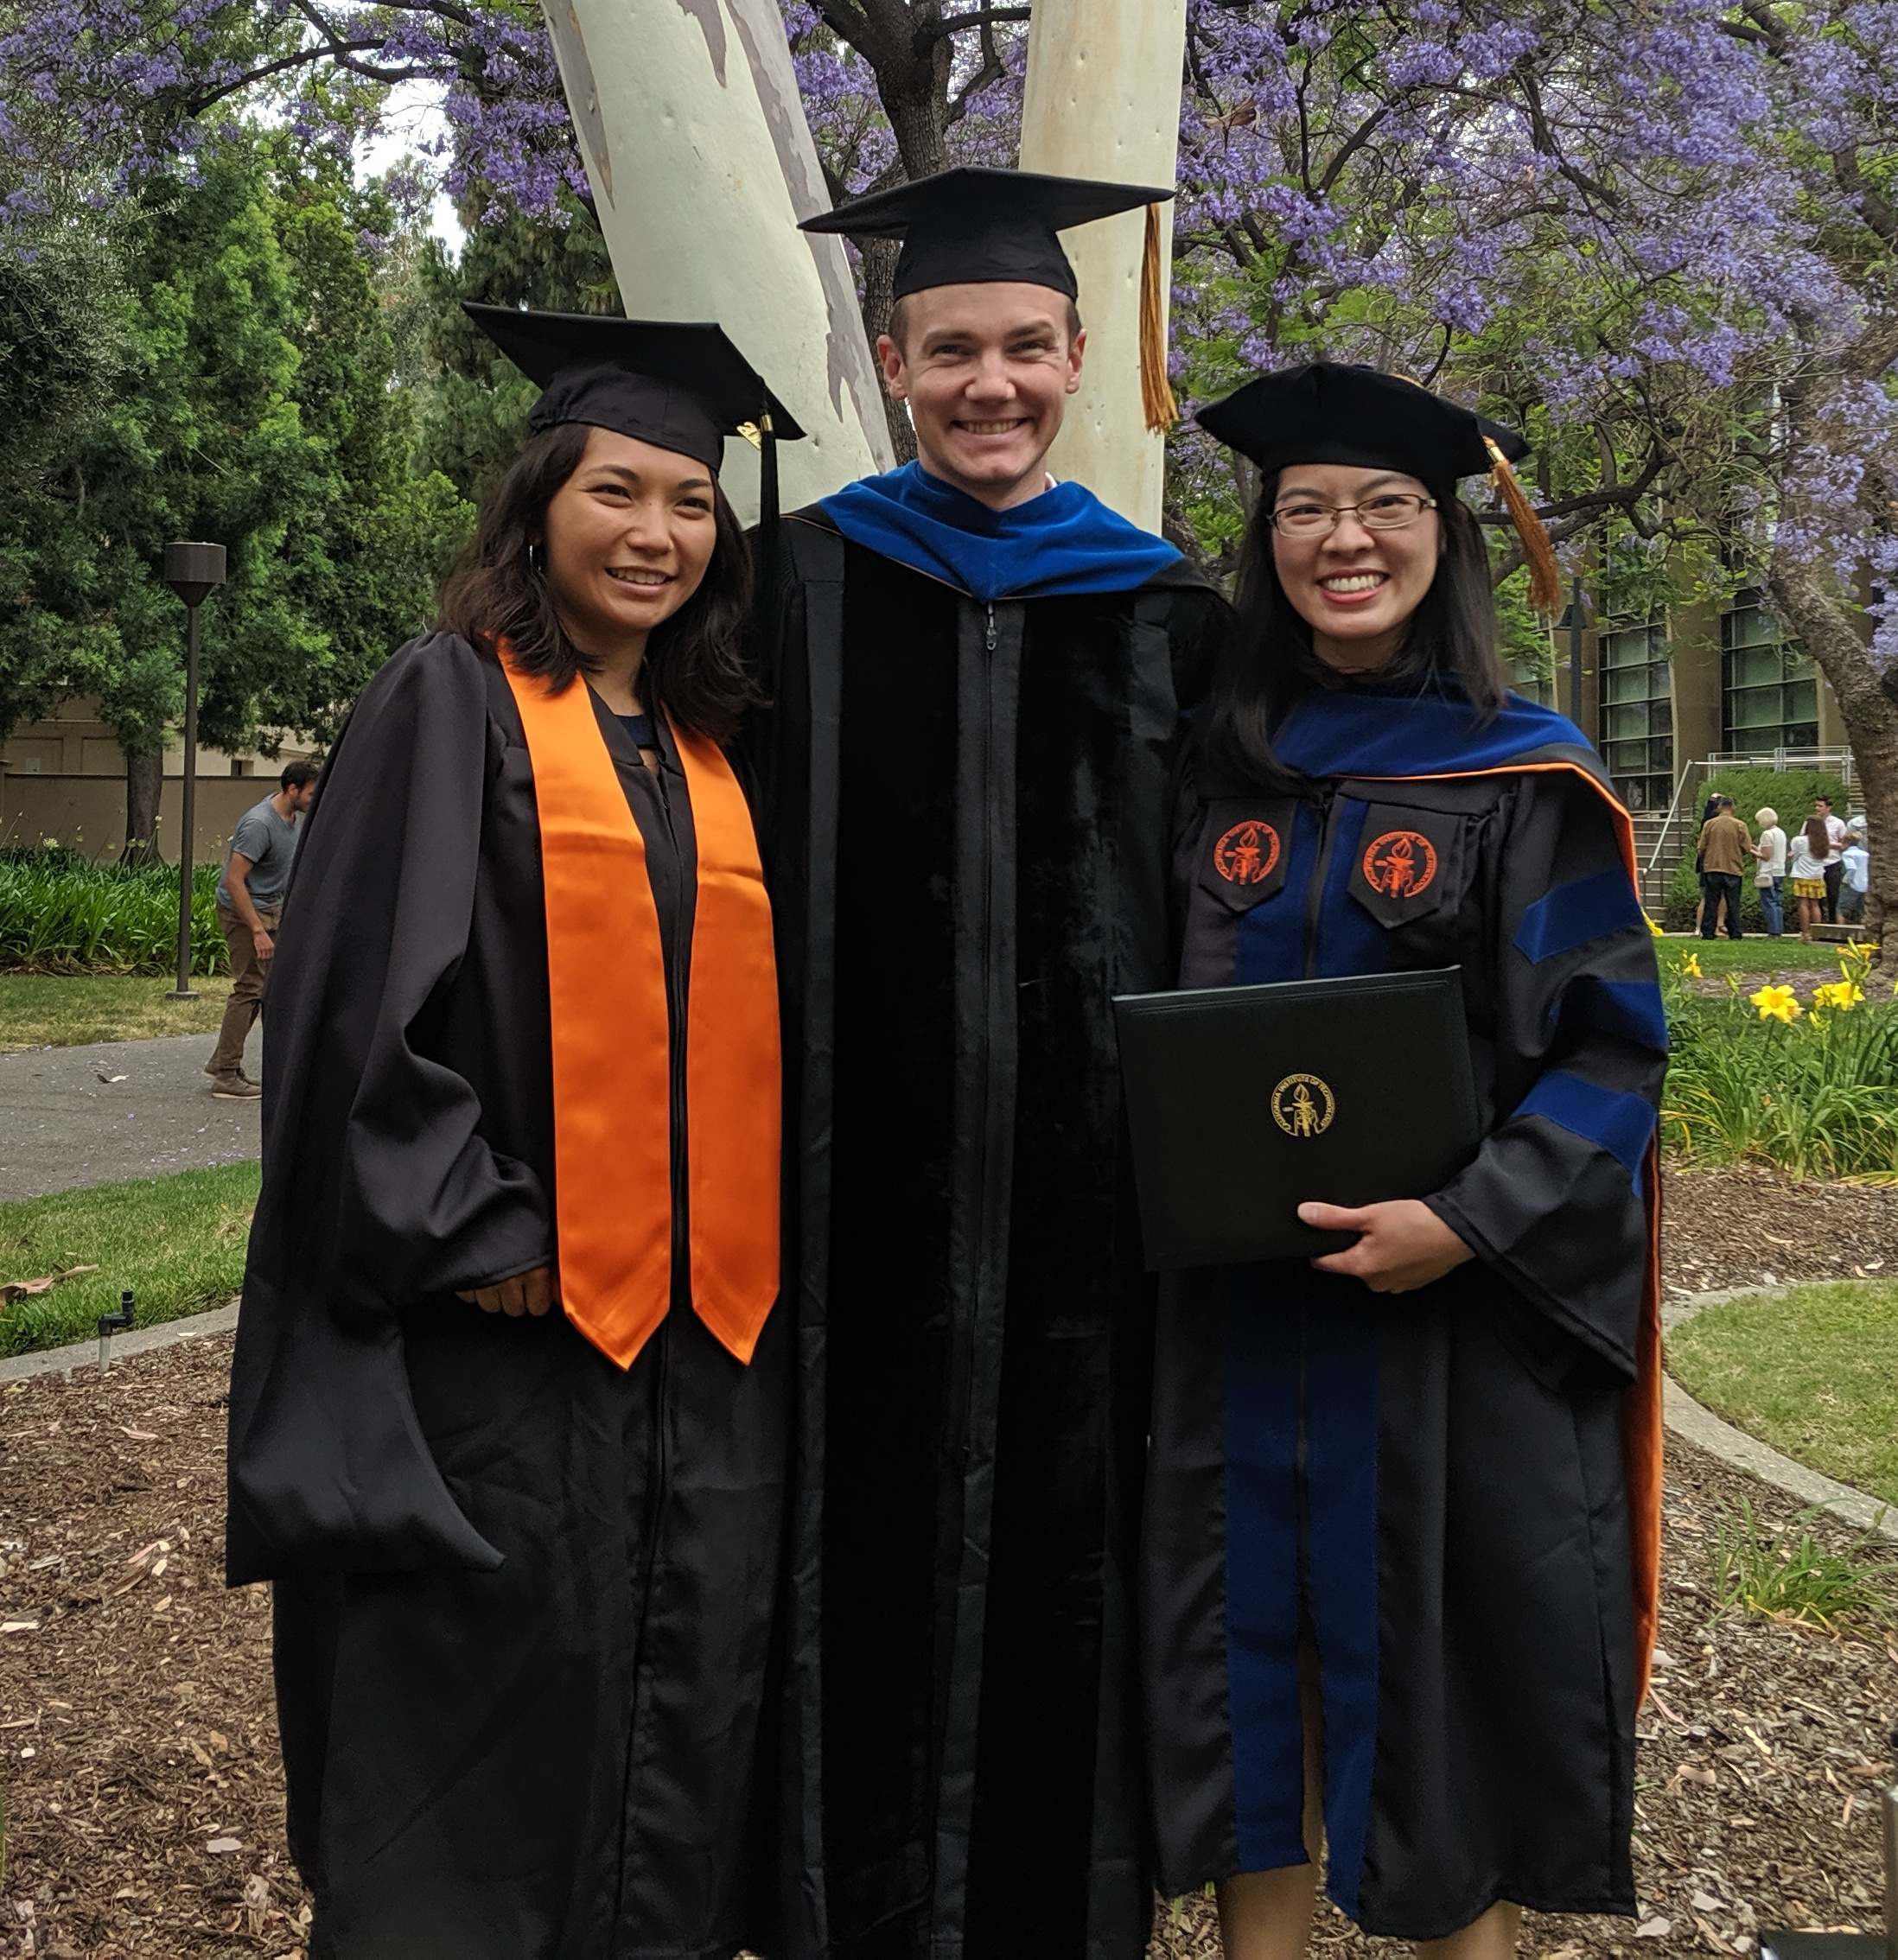 Mia, Evan, and Nicha at Caltech Commencement 2019